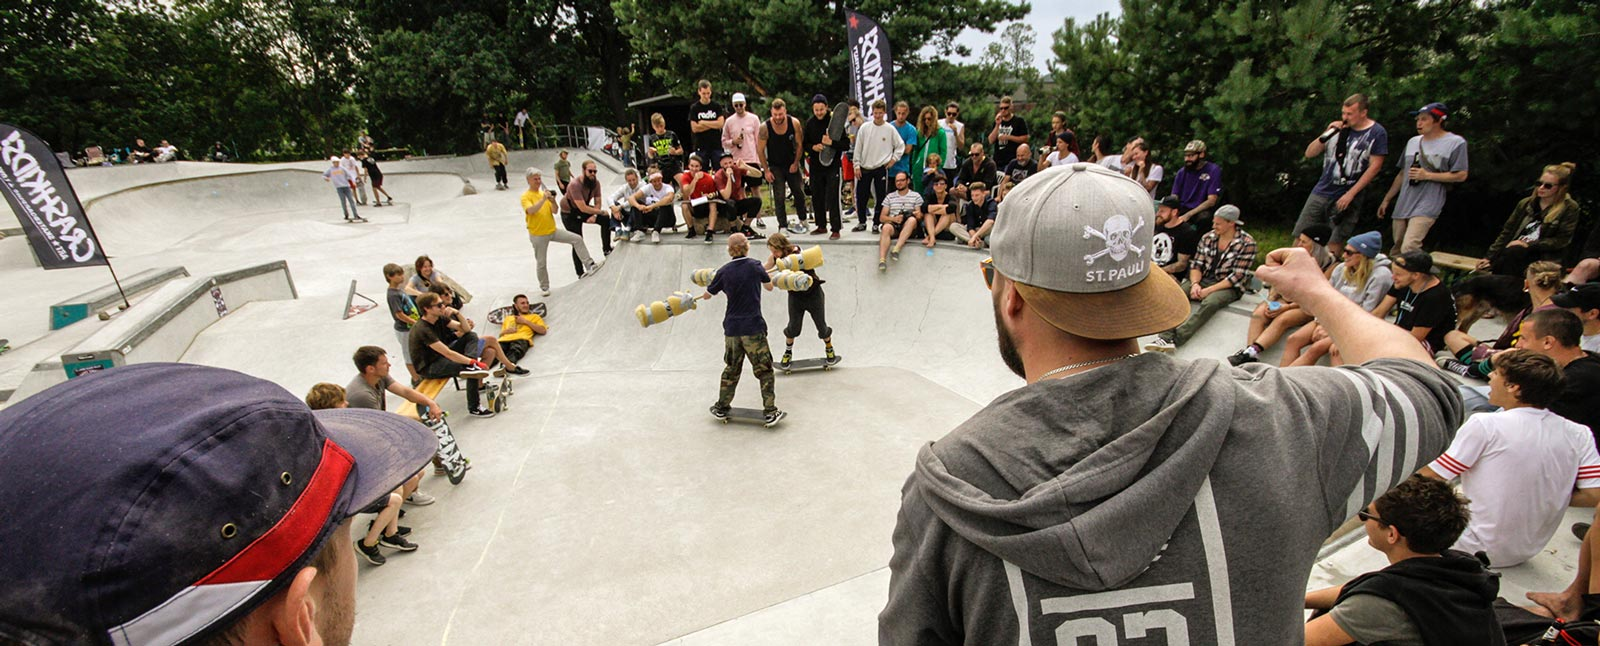 slider_start_ruegen_skateboarden_26